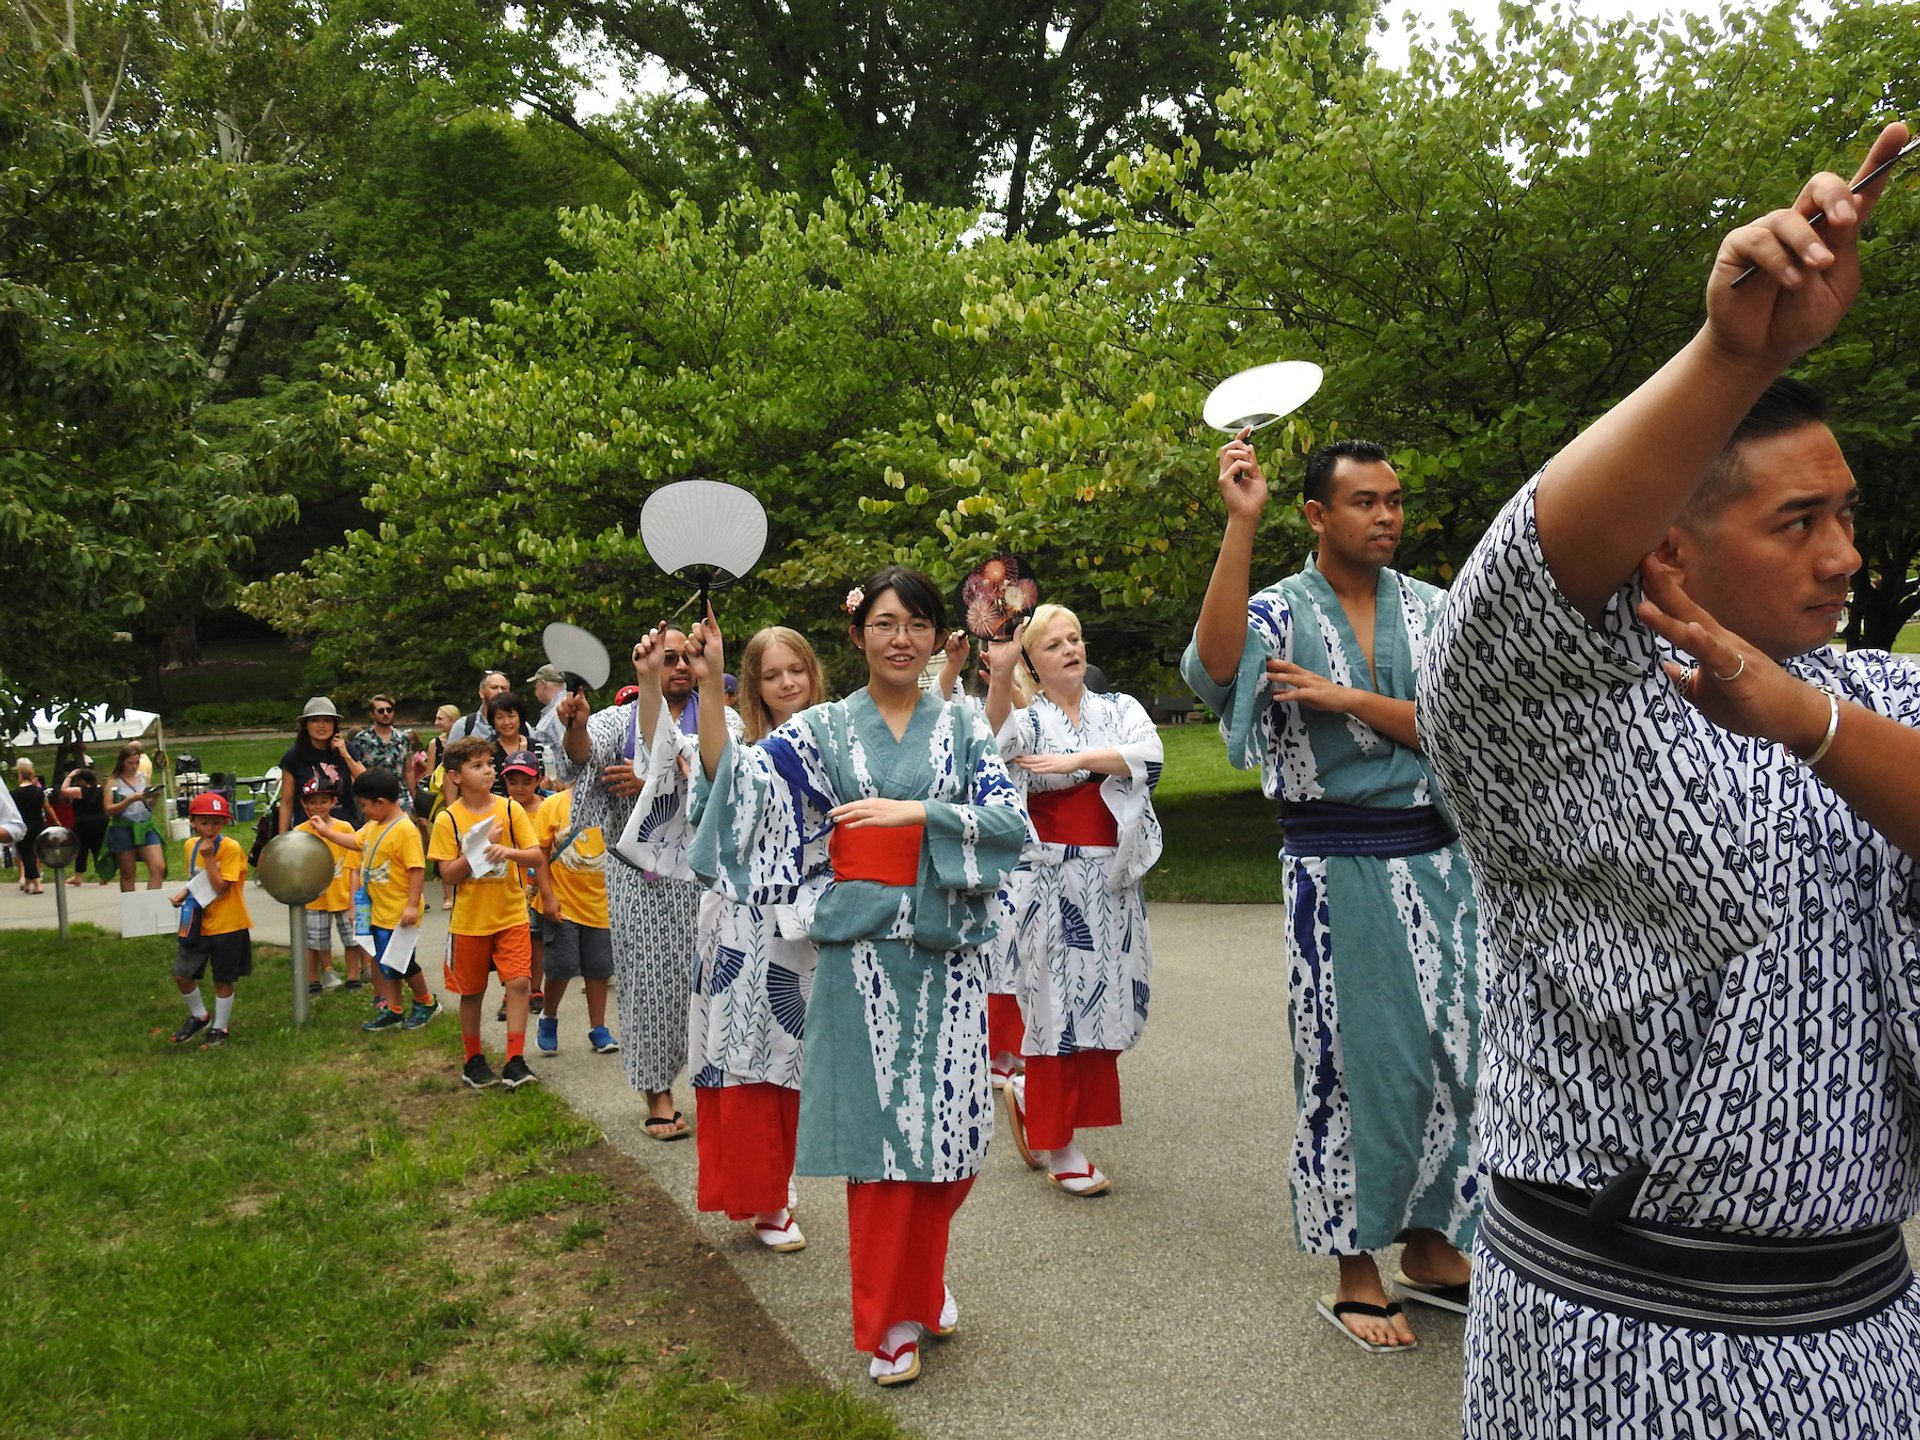 Japanese Festival in Midwest 2020 - Best Time